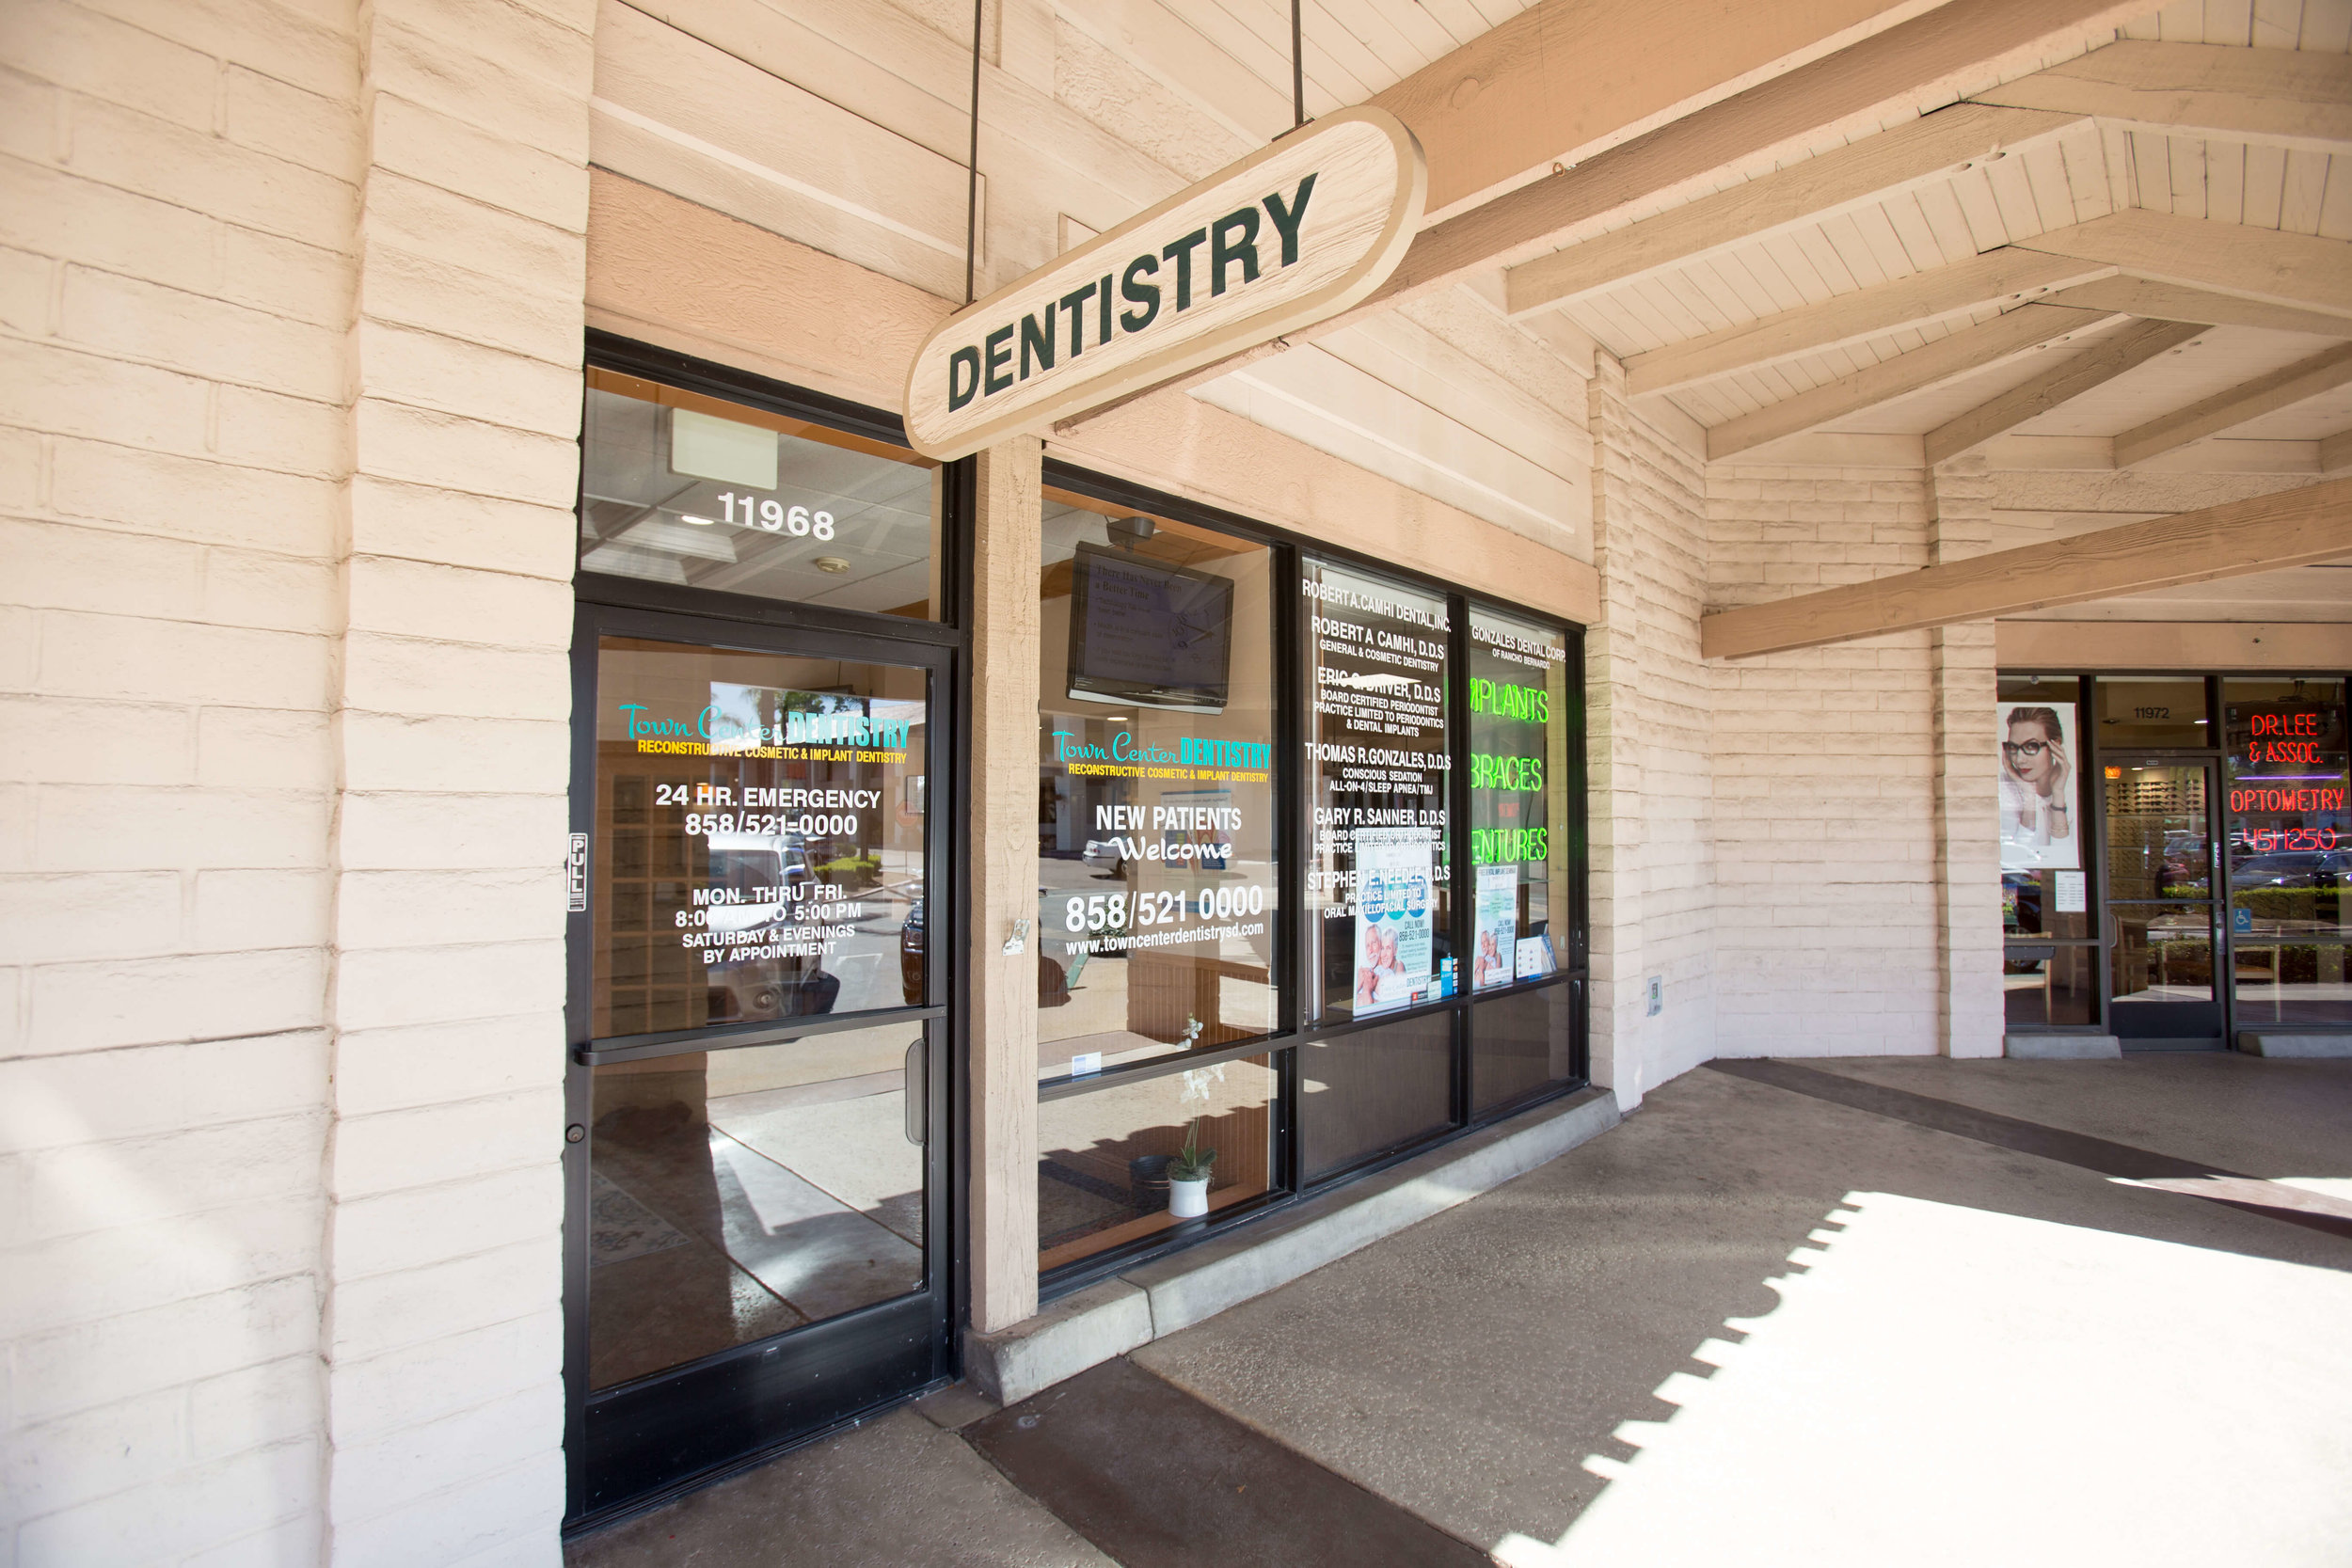 Come to Town Center Dentistry in Rancho Bernardo